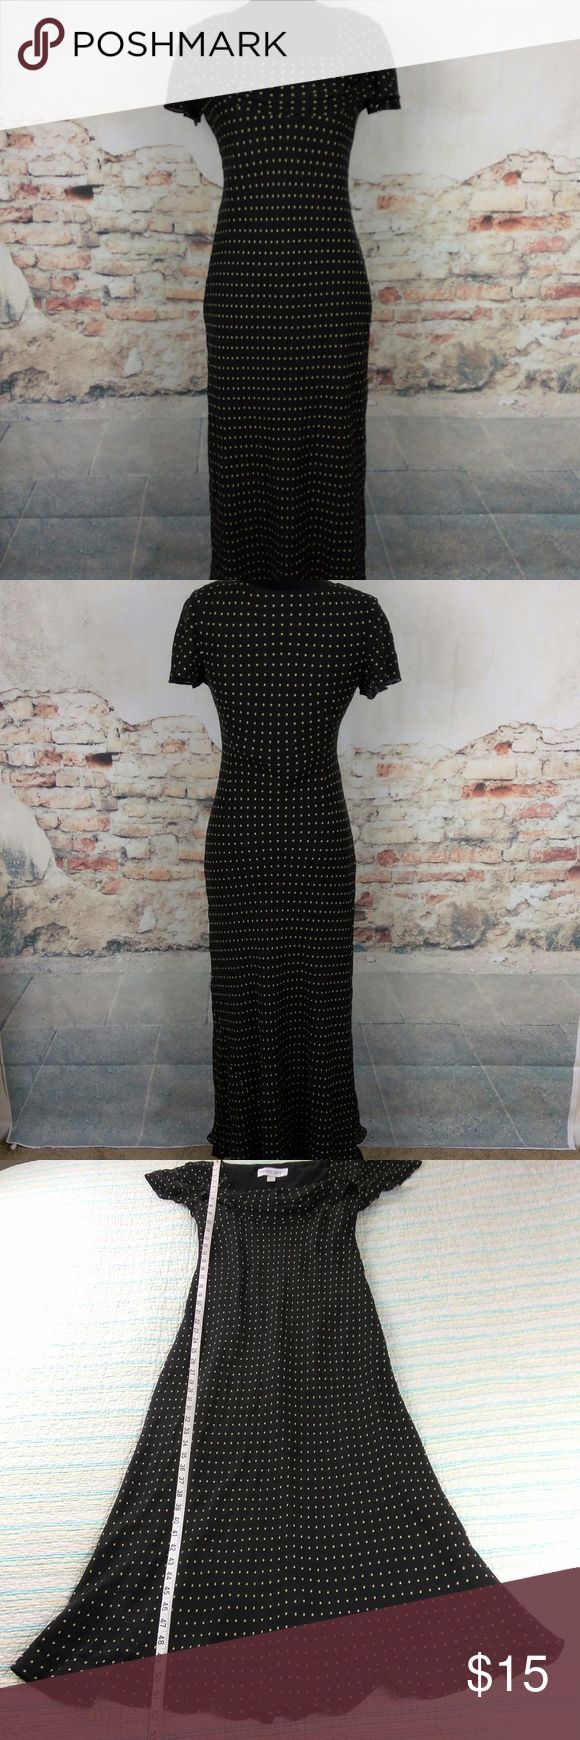 Donna Ricco New York 6 Black Tan Polka Dot Dress Donna Ricco New York Wms Sz 6 Black Tan Polka Dot 100% Silk Midi Flutter Dress Donna Ricco Dresses Midi